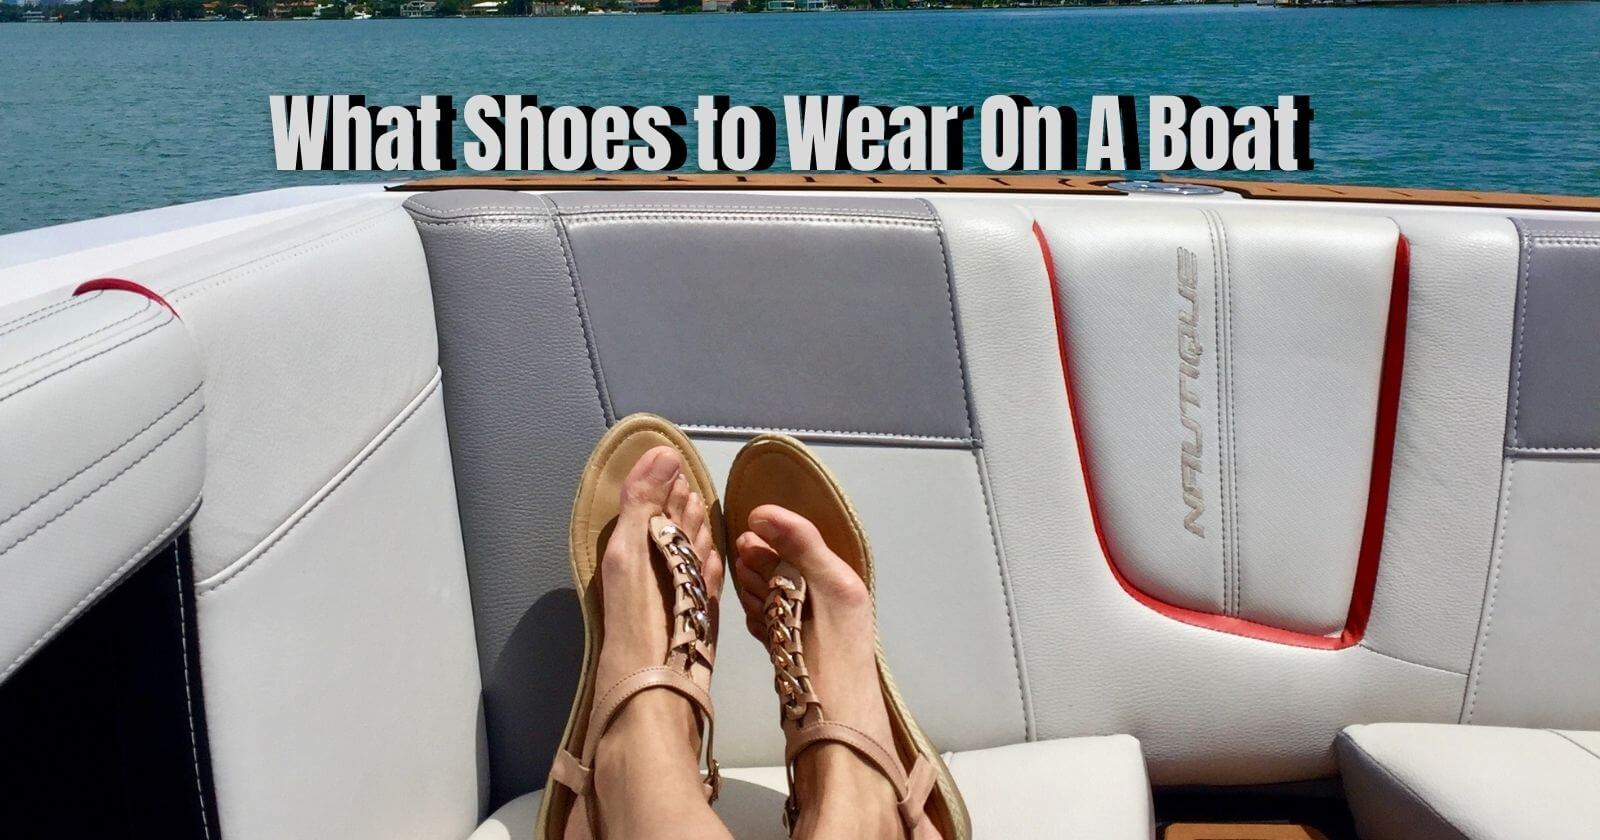 What shoes to wear on a boat